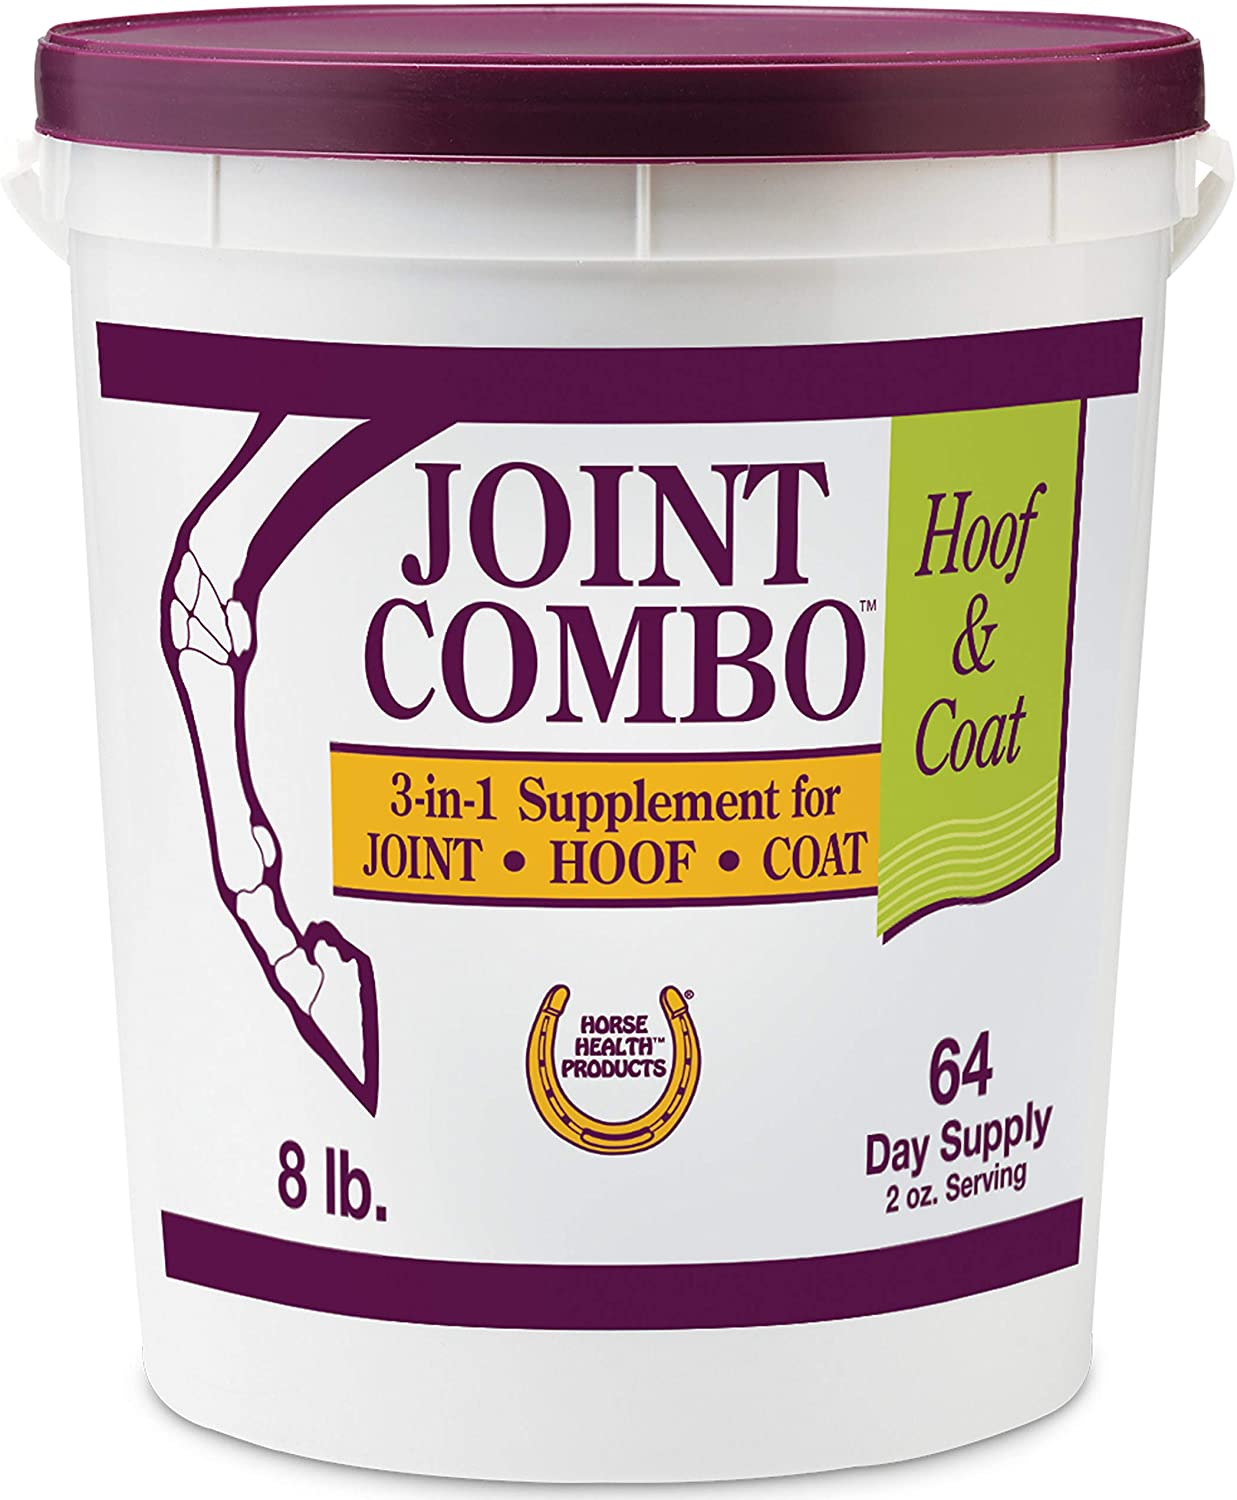 Horse Health Joint Combo Hoof & Coat, convenient 3-in-1 supplement for complete joint, hoof and coat care, 8 pound : Pet Supplements And Vitamins : Pet Supplies